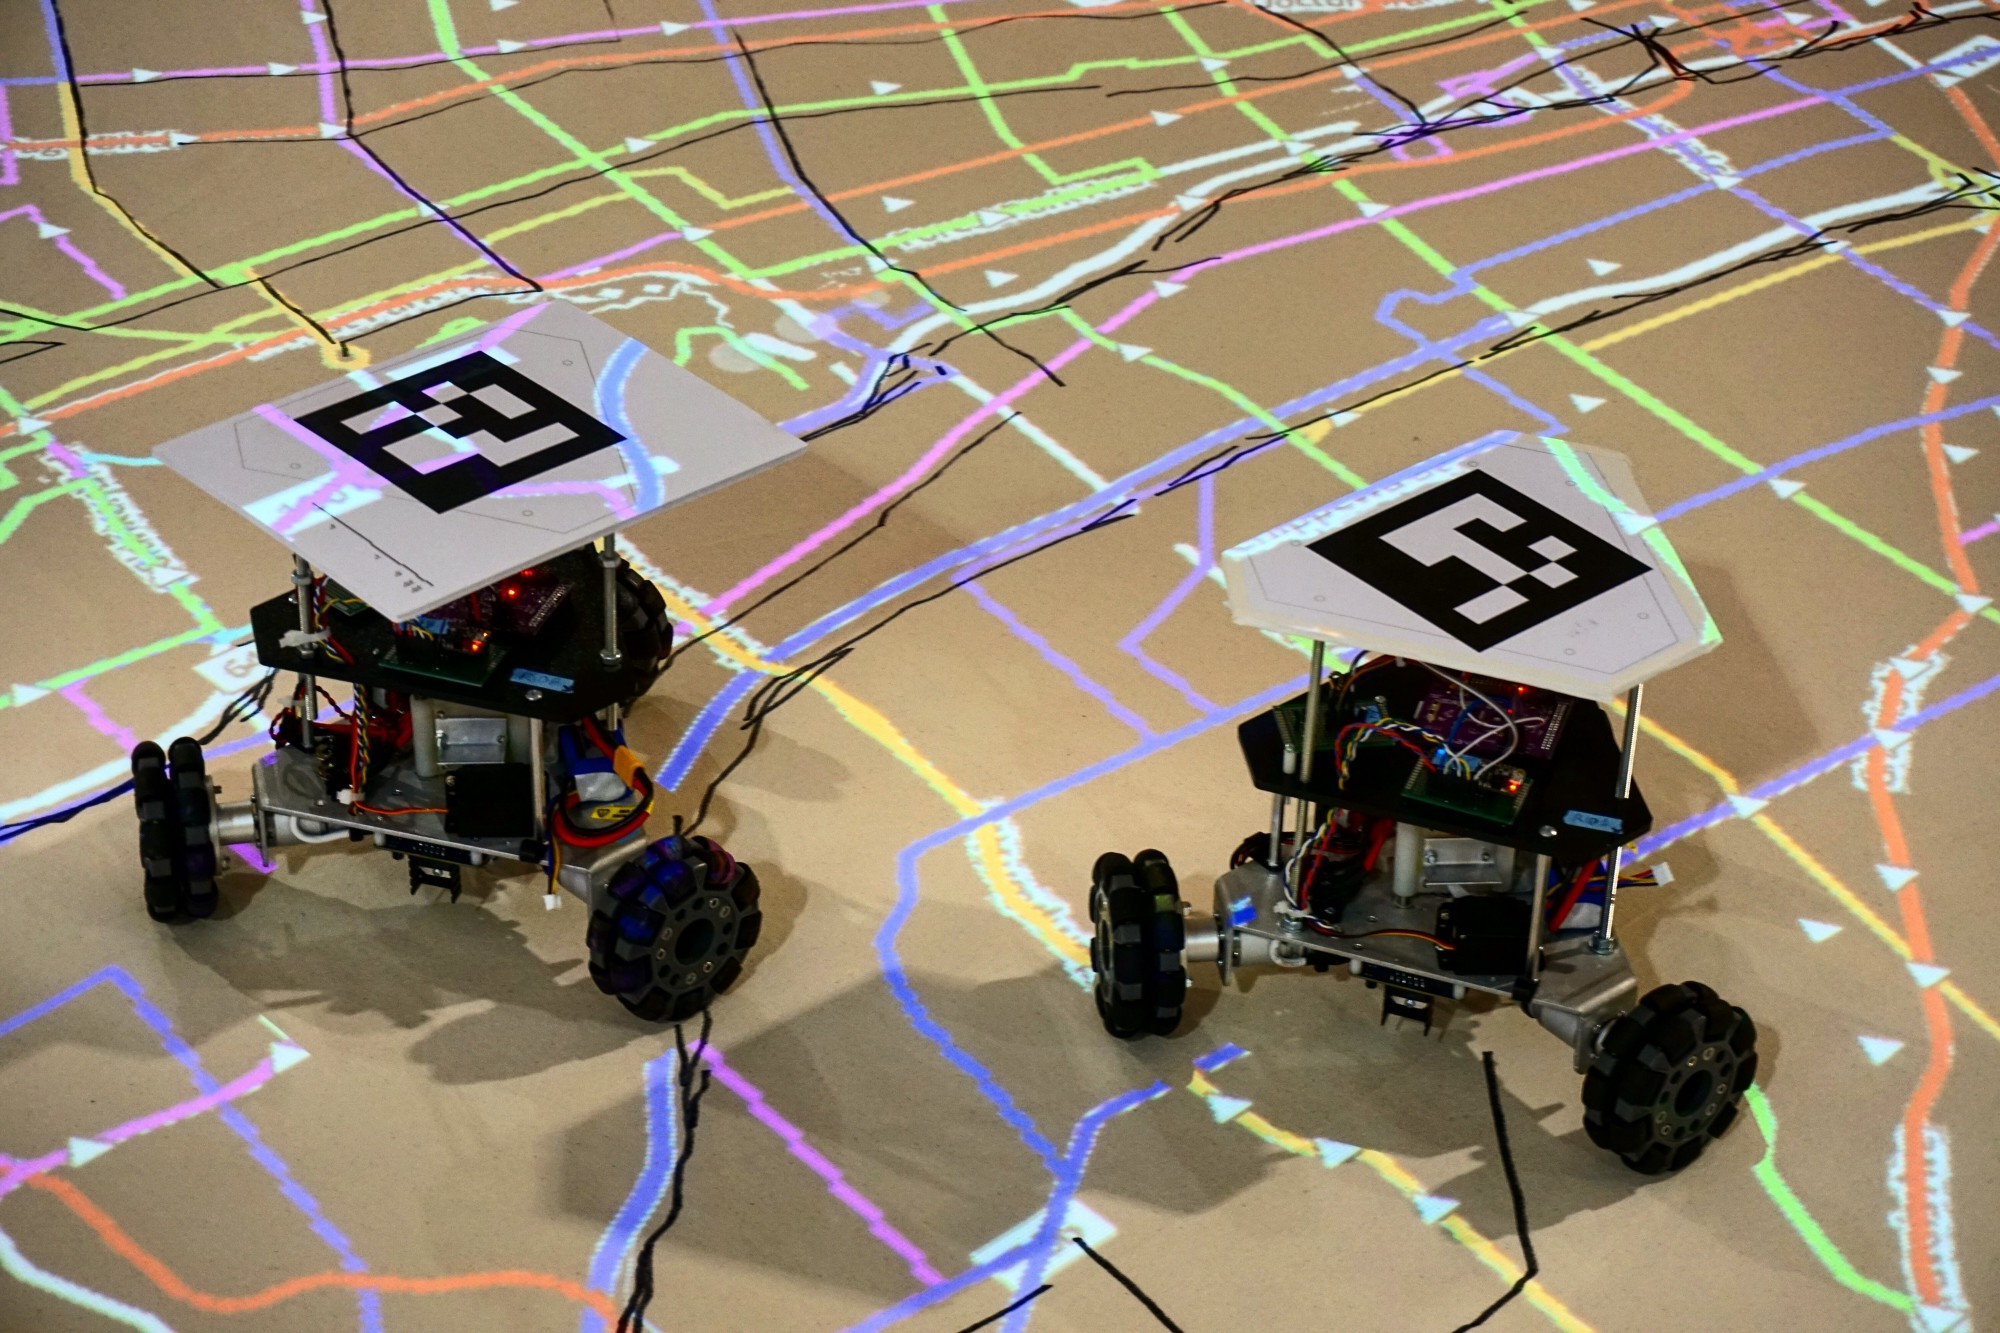 Drawing Maps With Robots Opencv And Raspberry Pi Chris